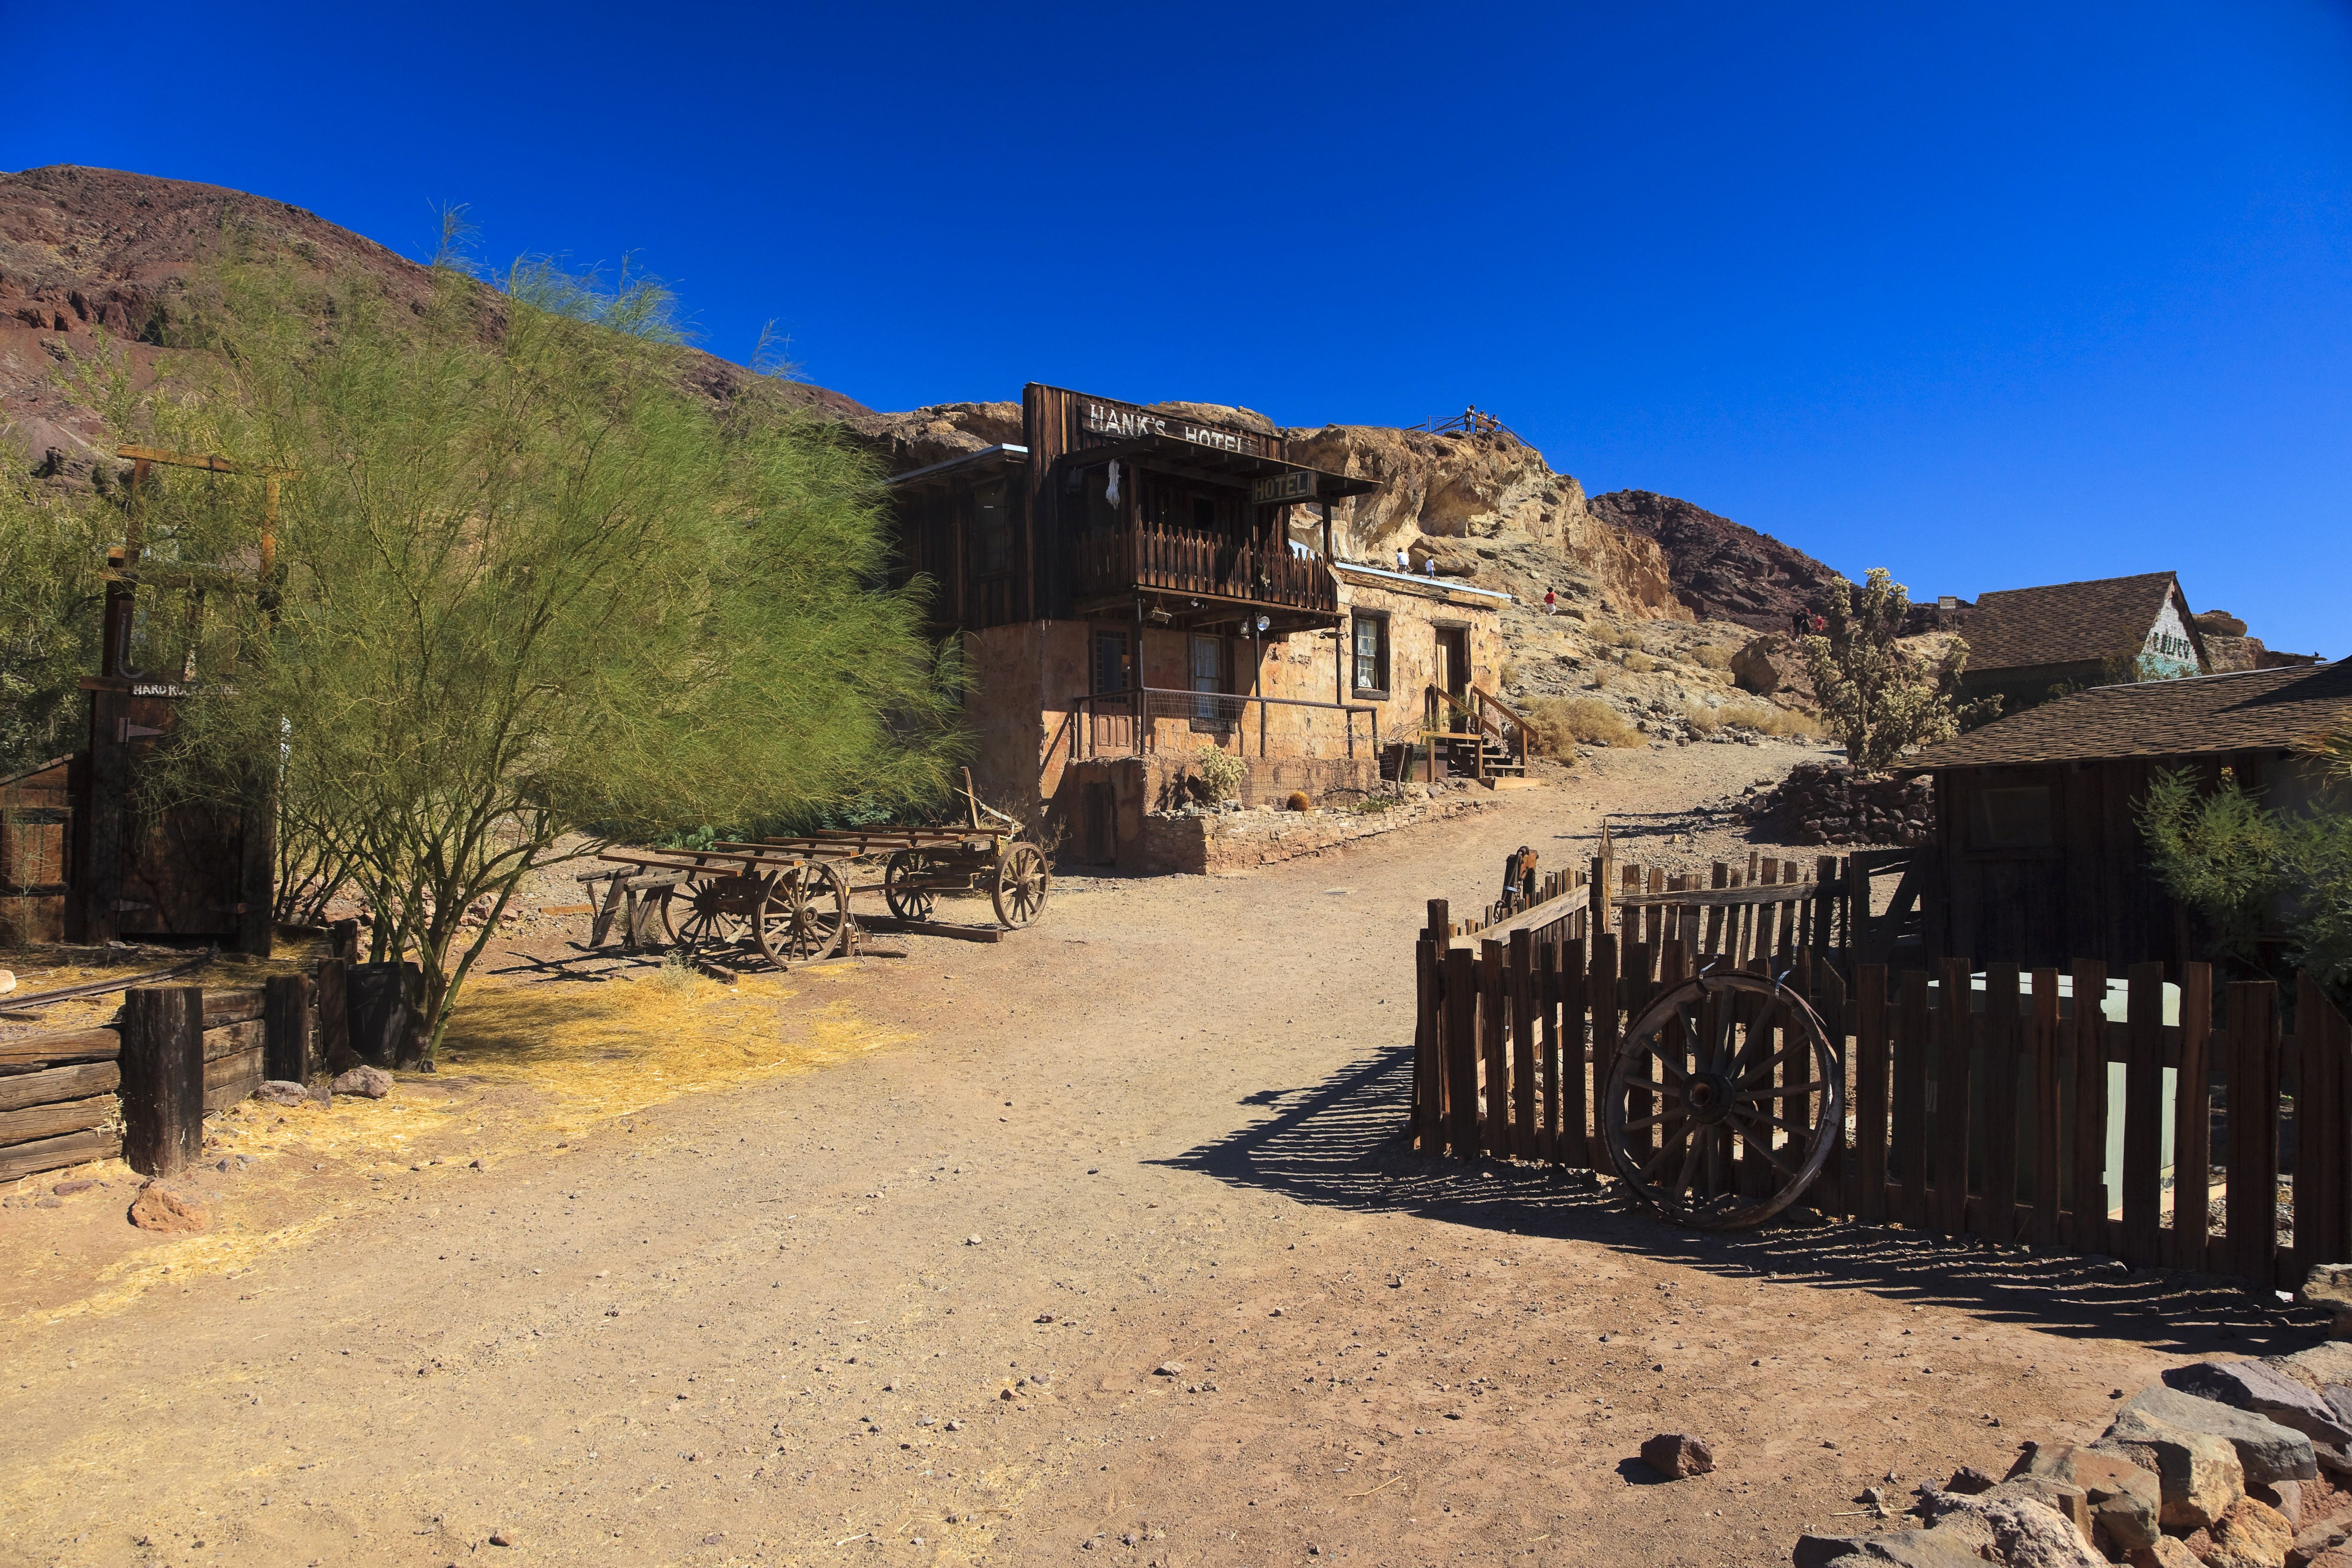 Calico Ghost Town in California